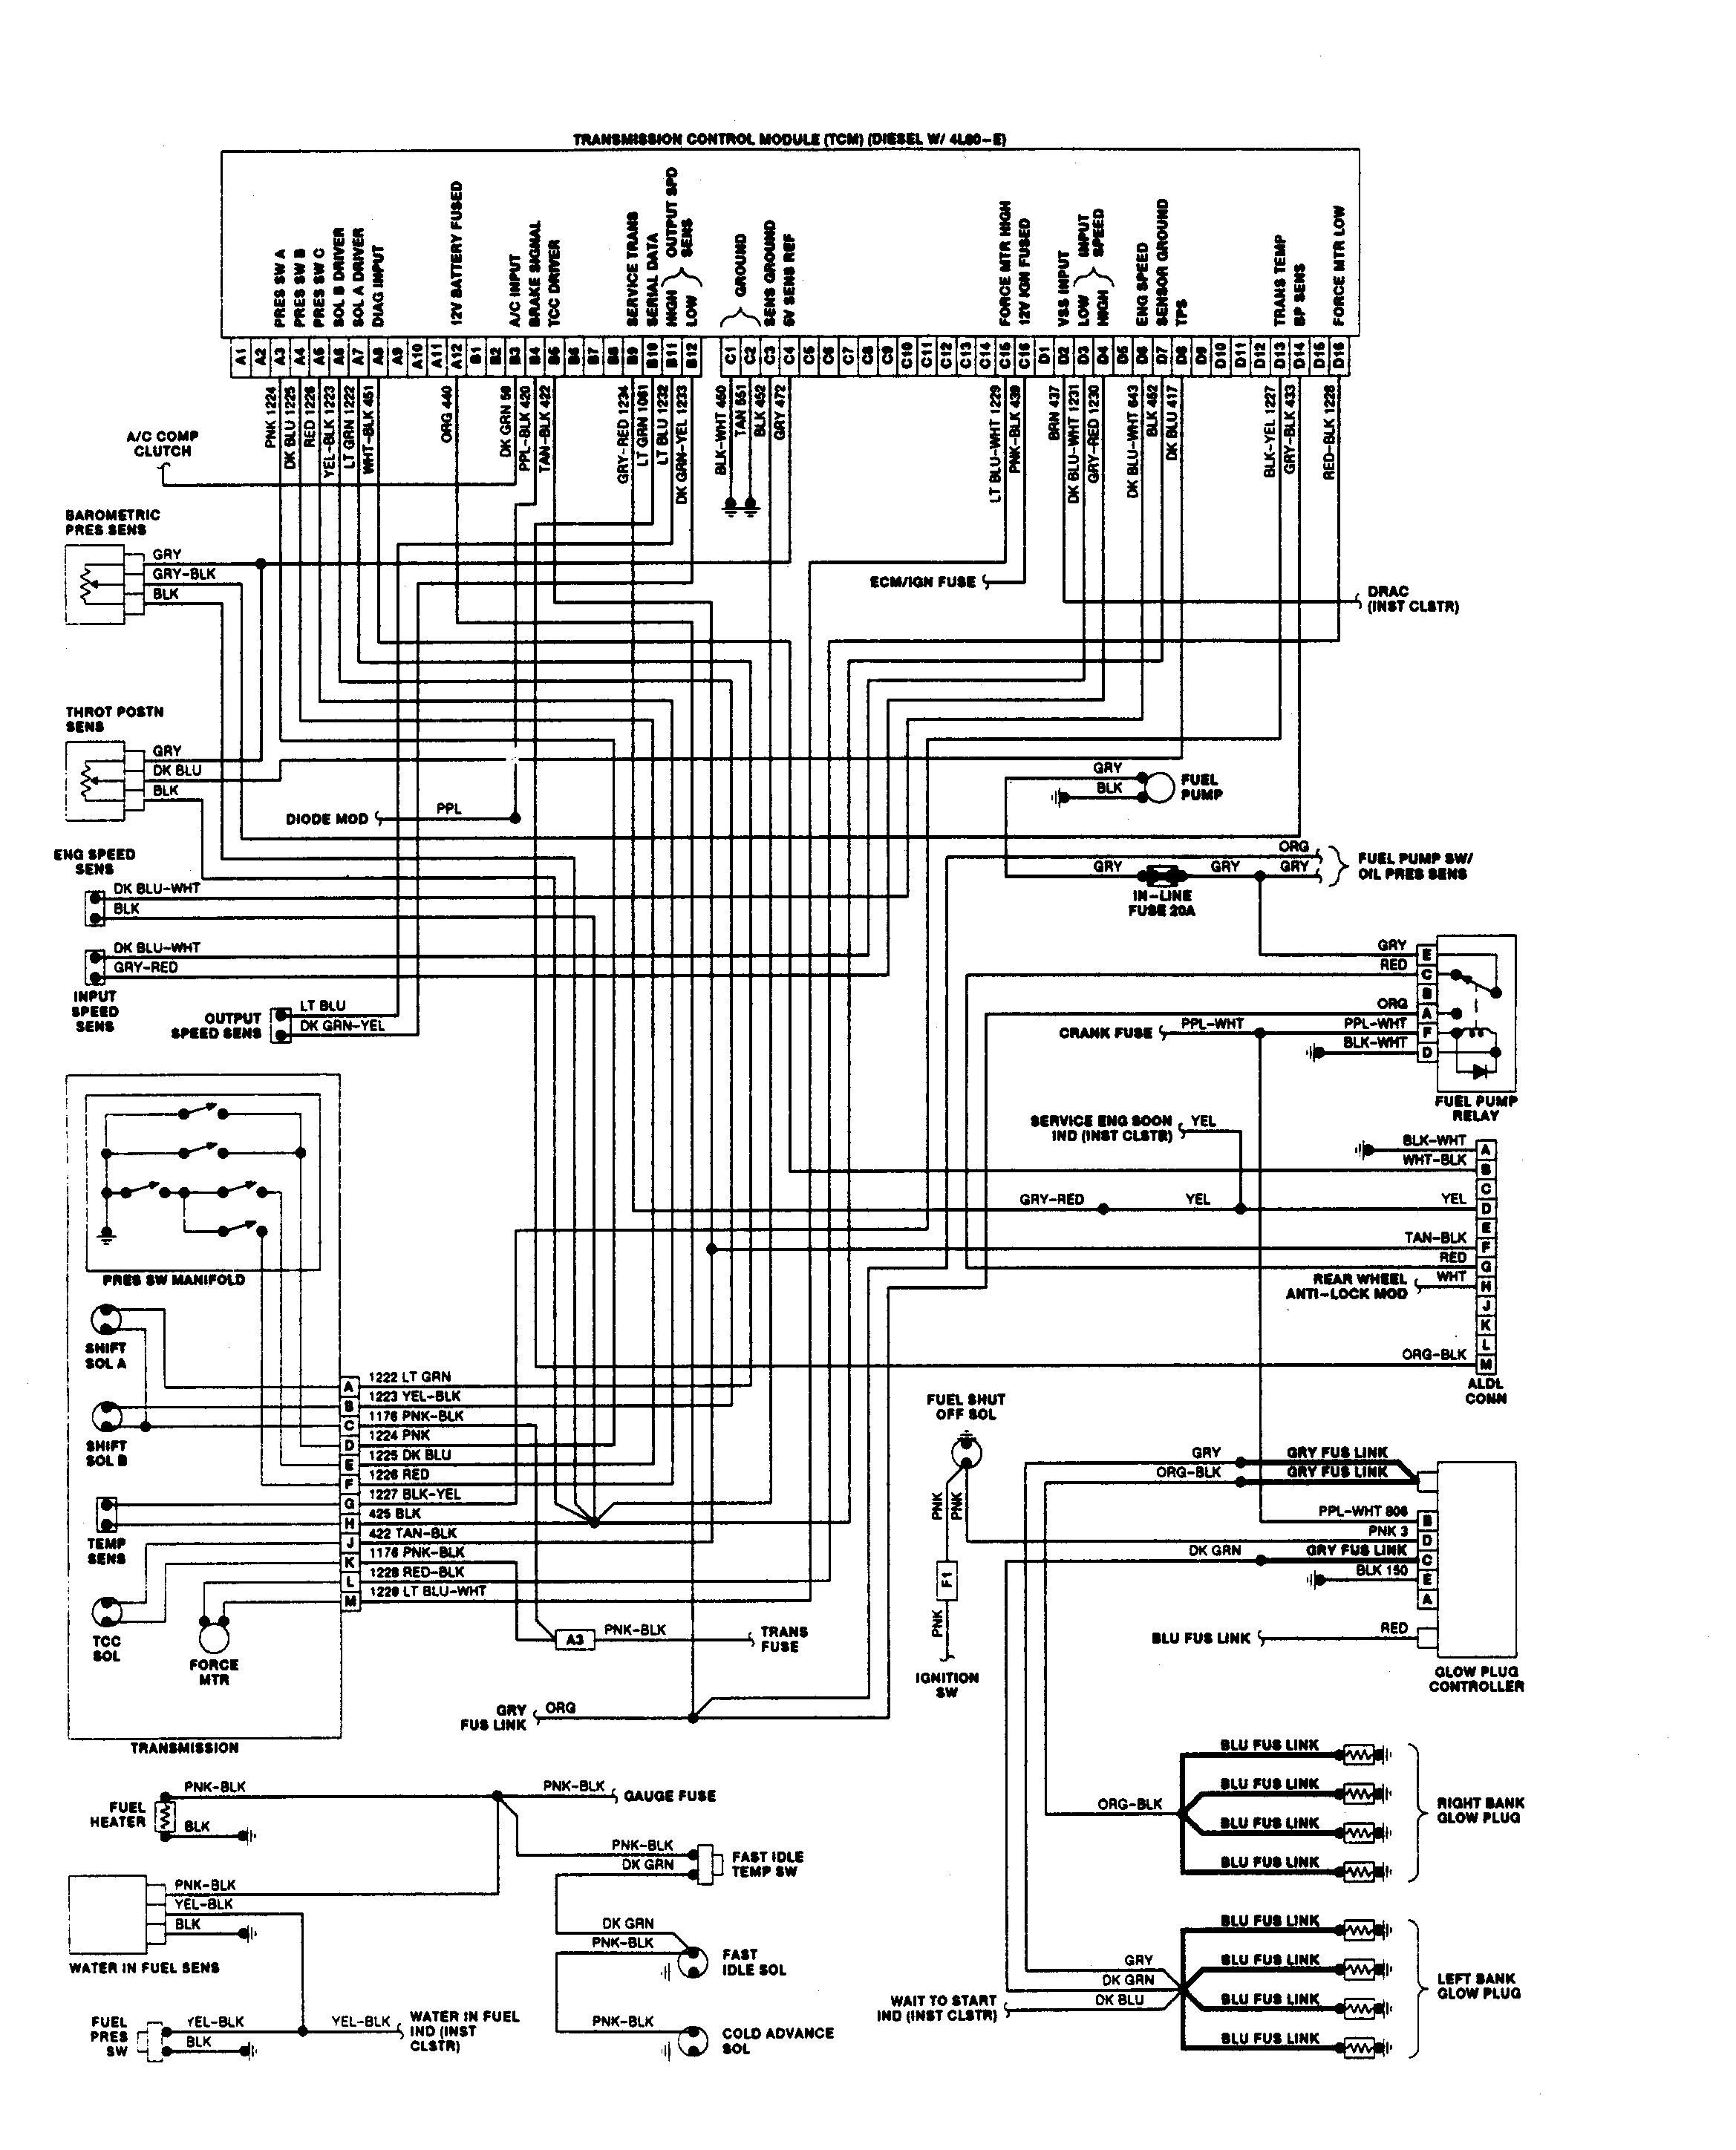 1991 chevy p30 wiring diagrams wiring diagrams schematics Chevy Silverado Wiring Diagram